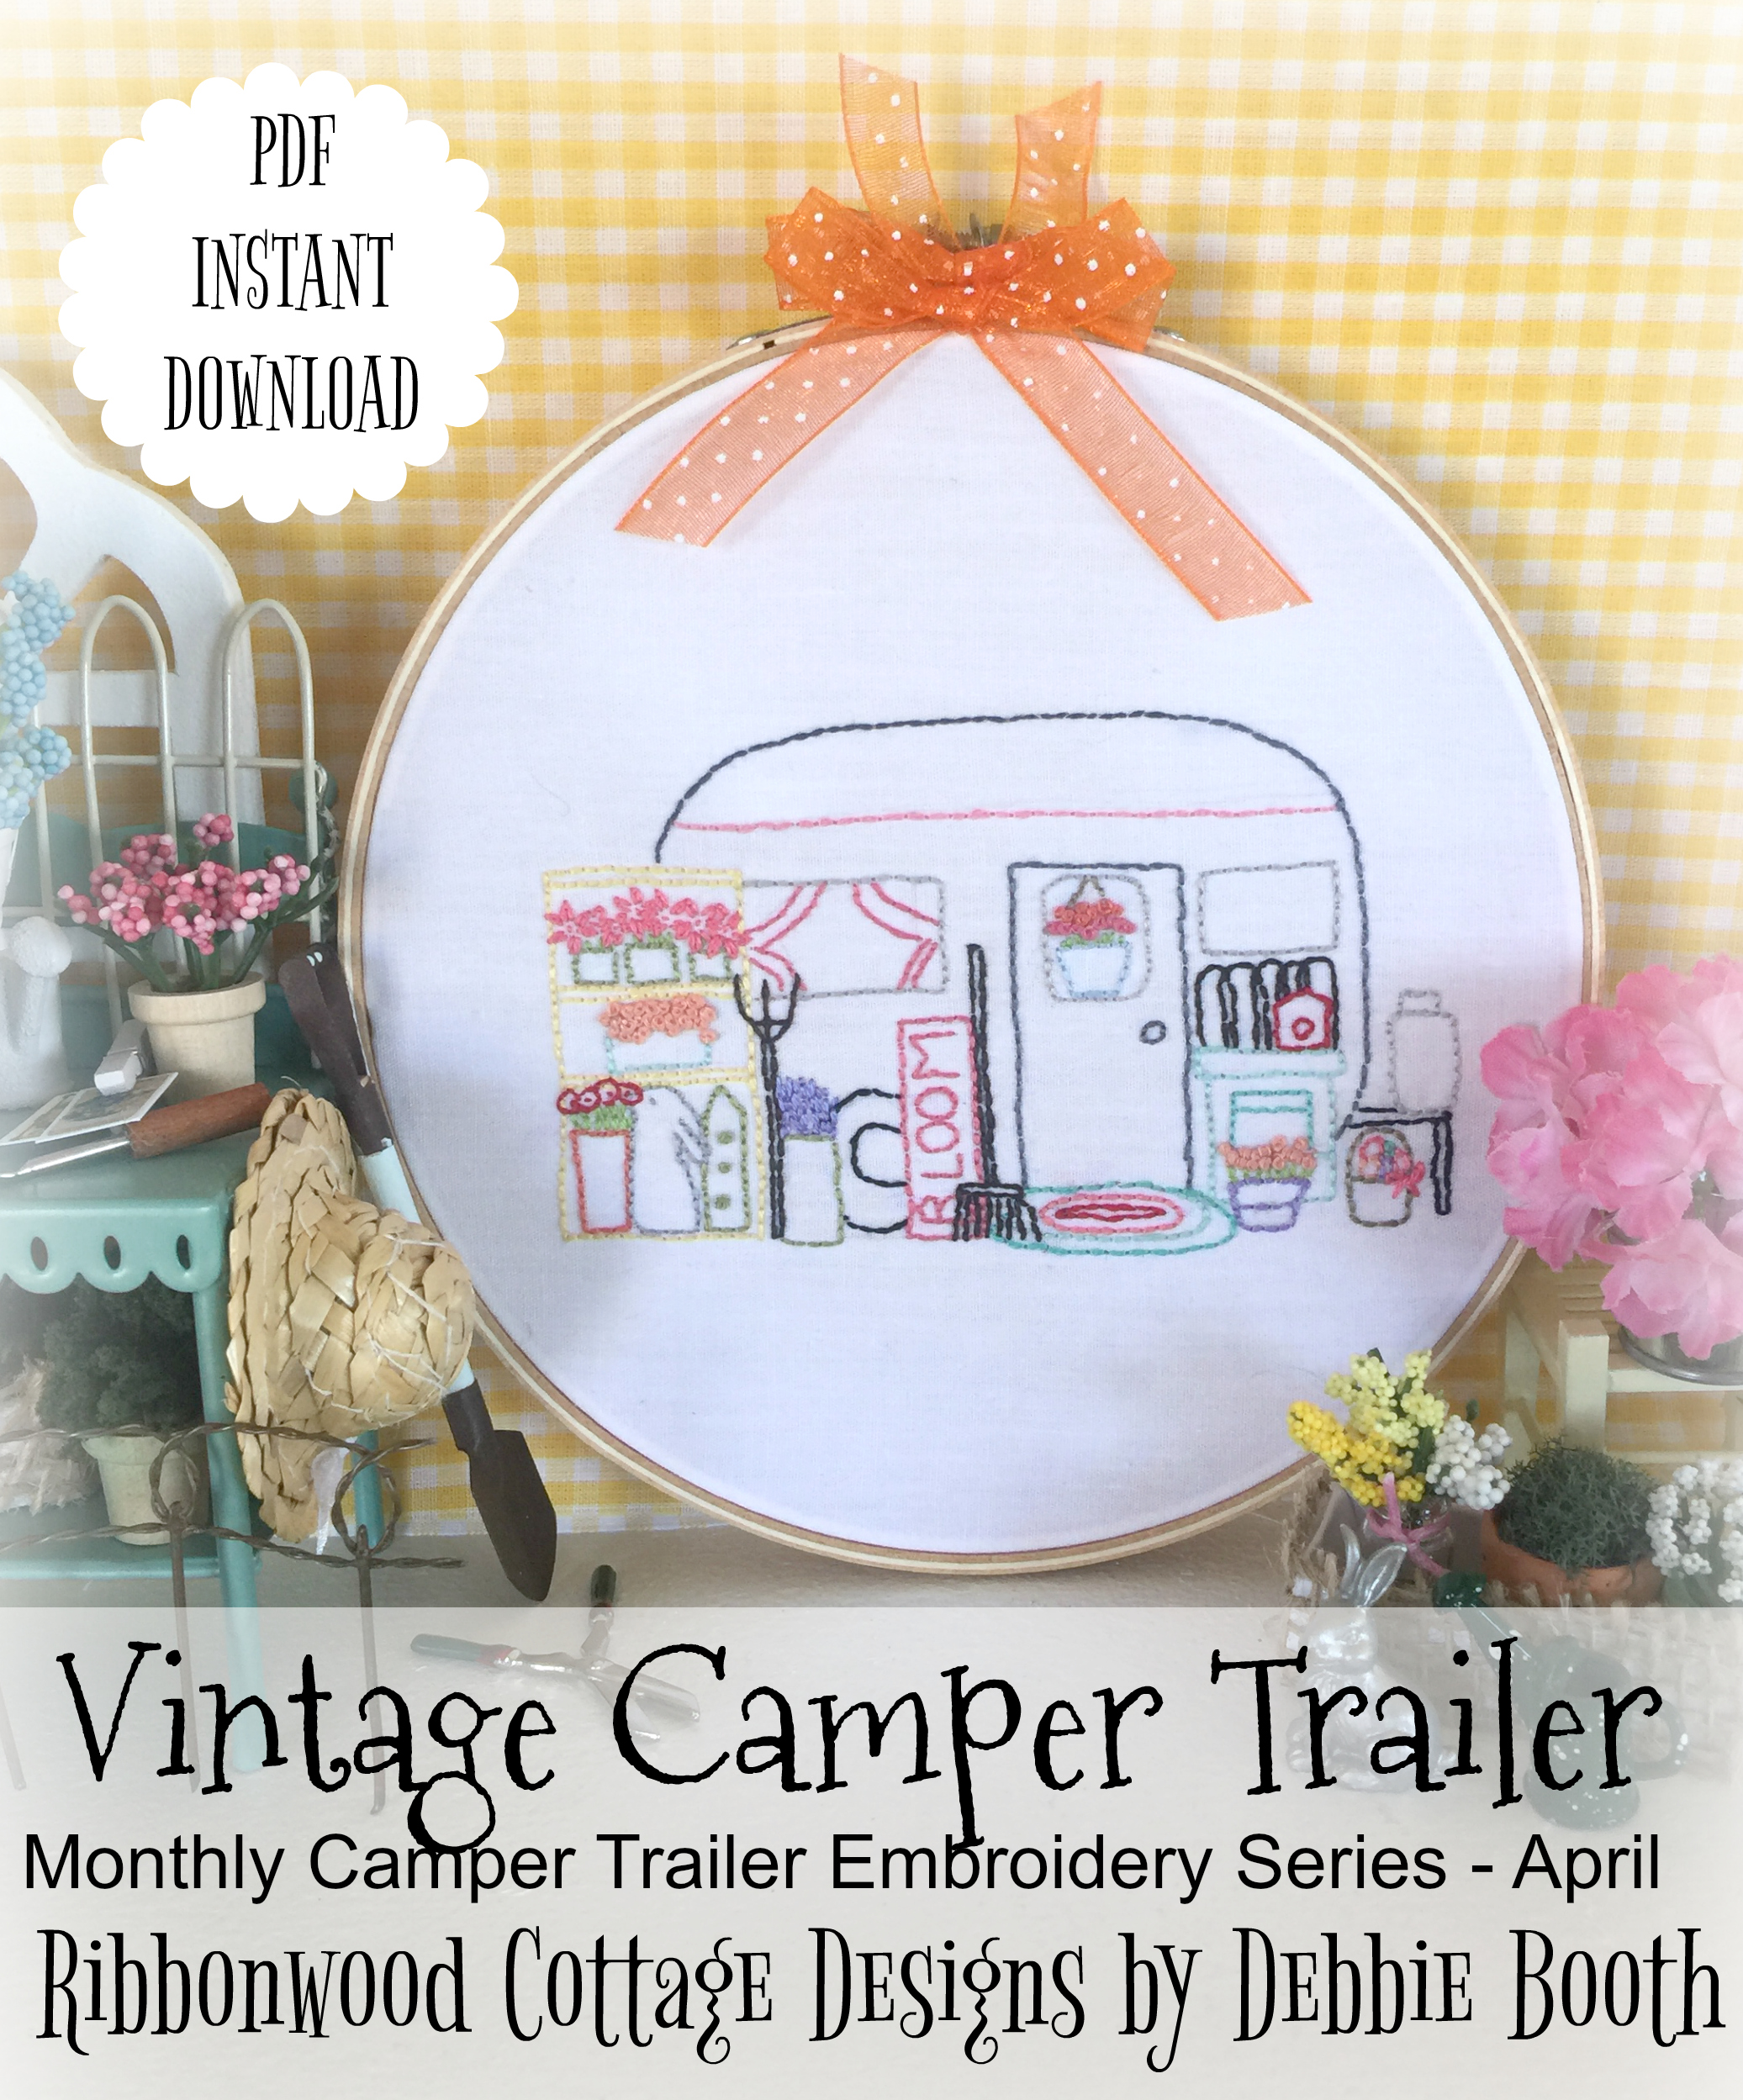 April Vintage Camper Trailer Embroidery Pattern